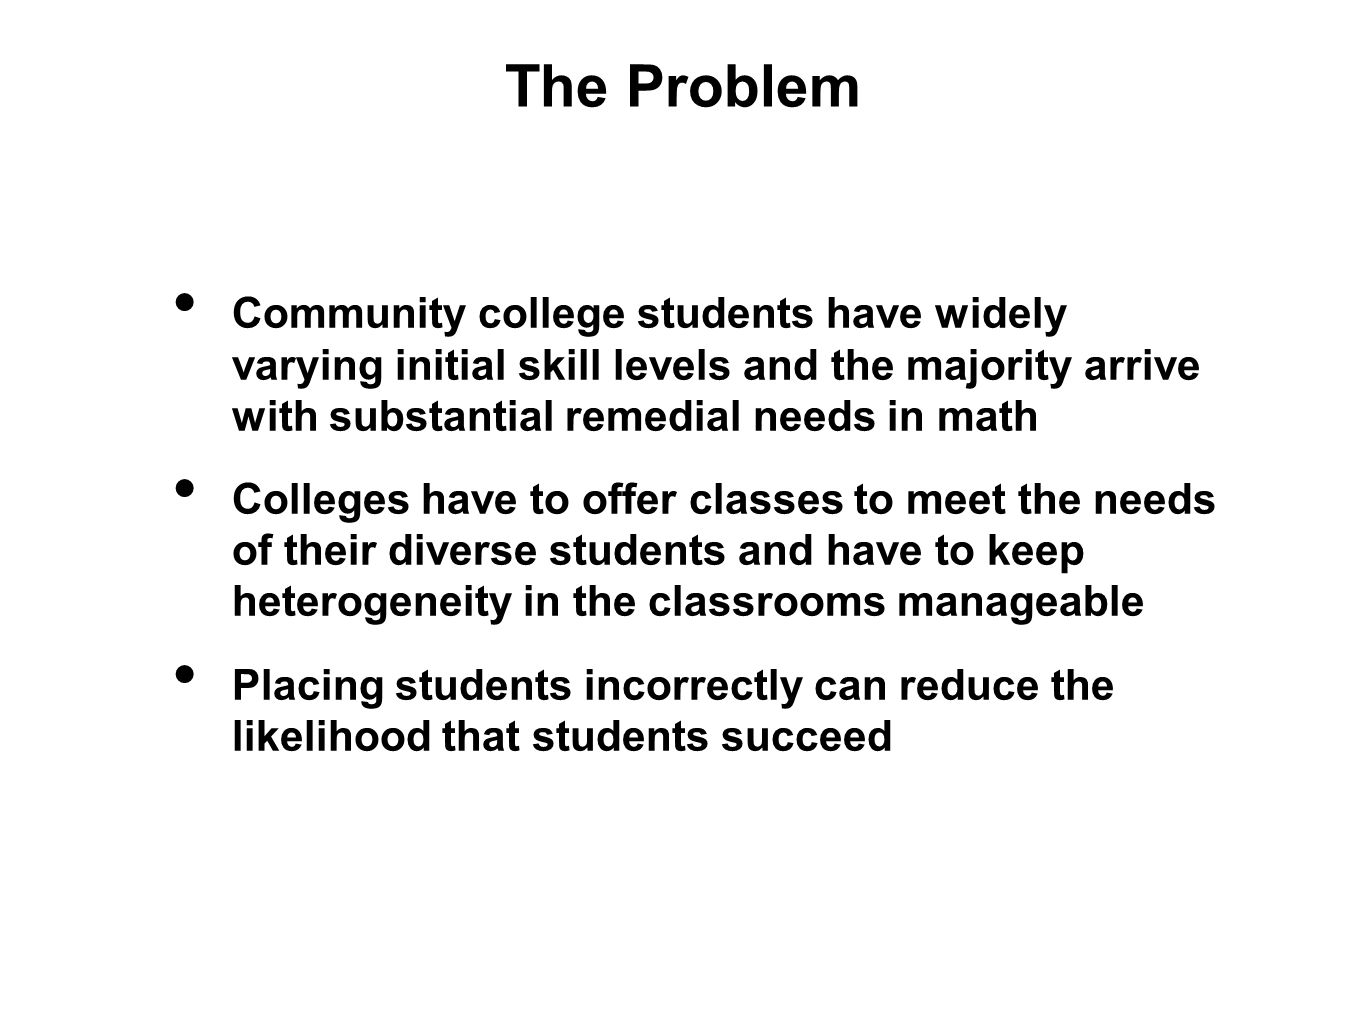 The Problem Community college students have widely varying initial skill levels and the majority arrive with substantial remedial needs in math Colleges have to offer classes to meet the needs of their diverse students and have to keep heterogeneity in the classrooms manageable Placing students incorrectly can reduce the likelihood that students succeed